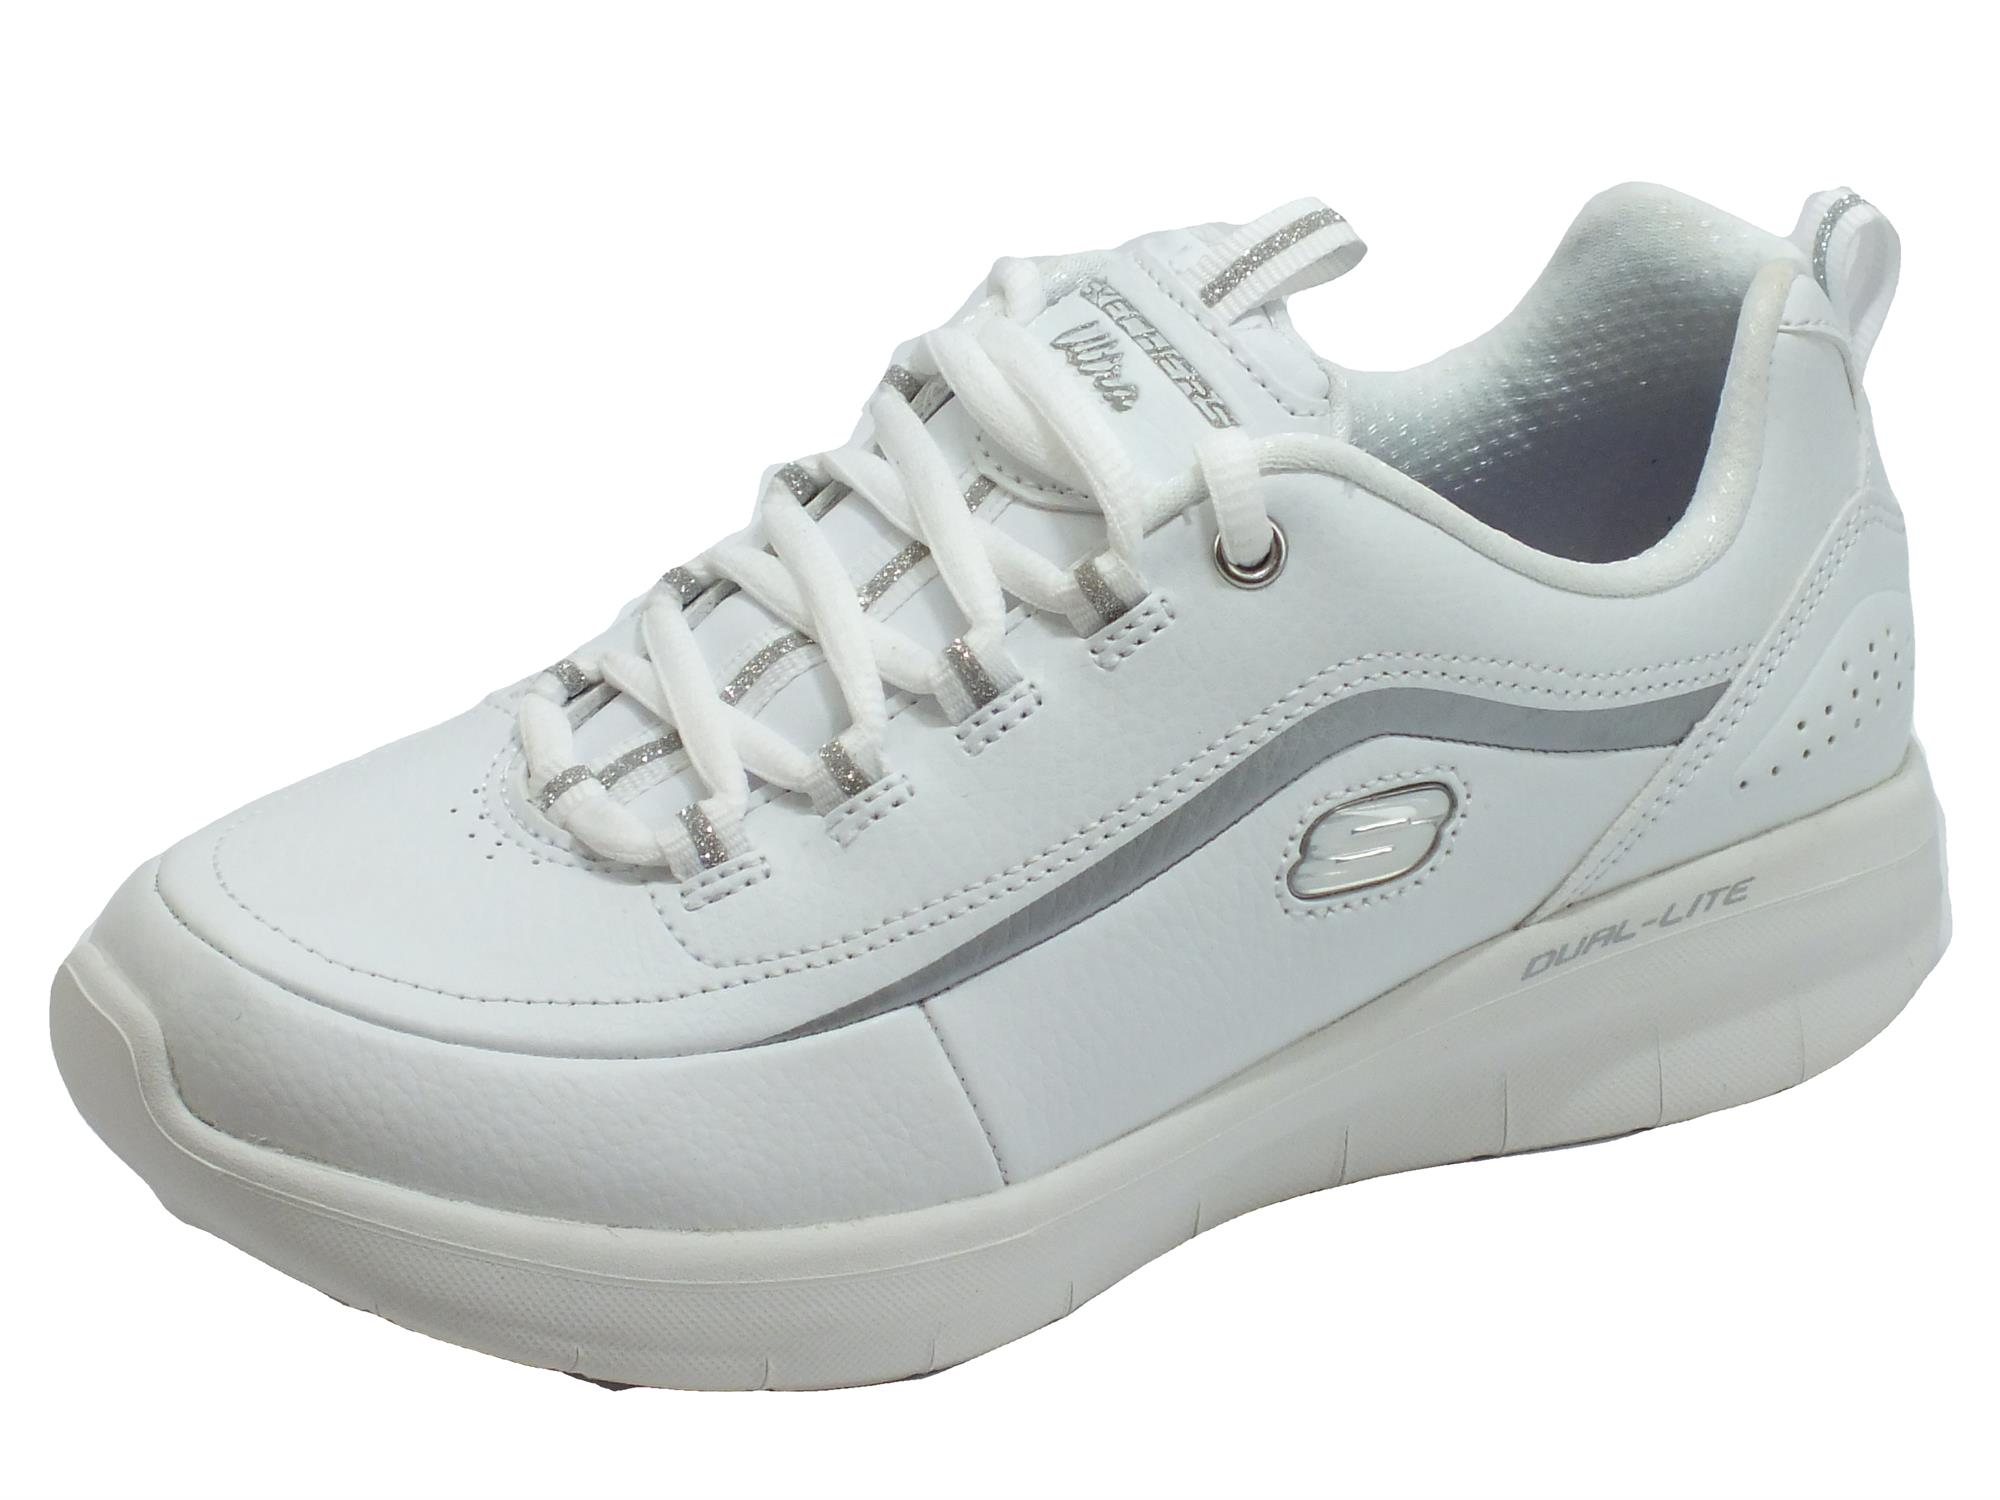 SKECHERS SYNERGY 2.0 12933 WSL scarpe donna sportive ginnastica sneakers bianco